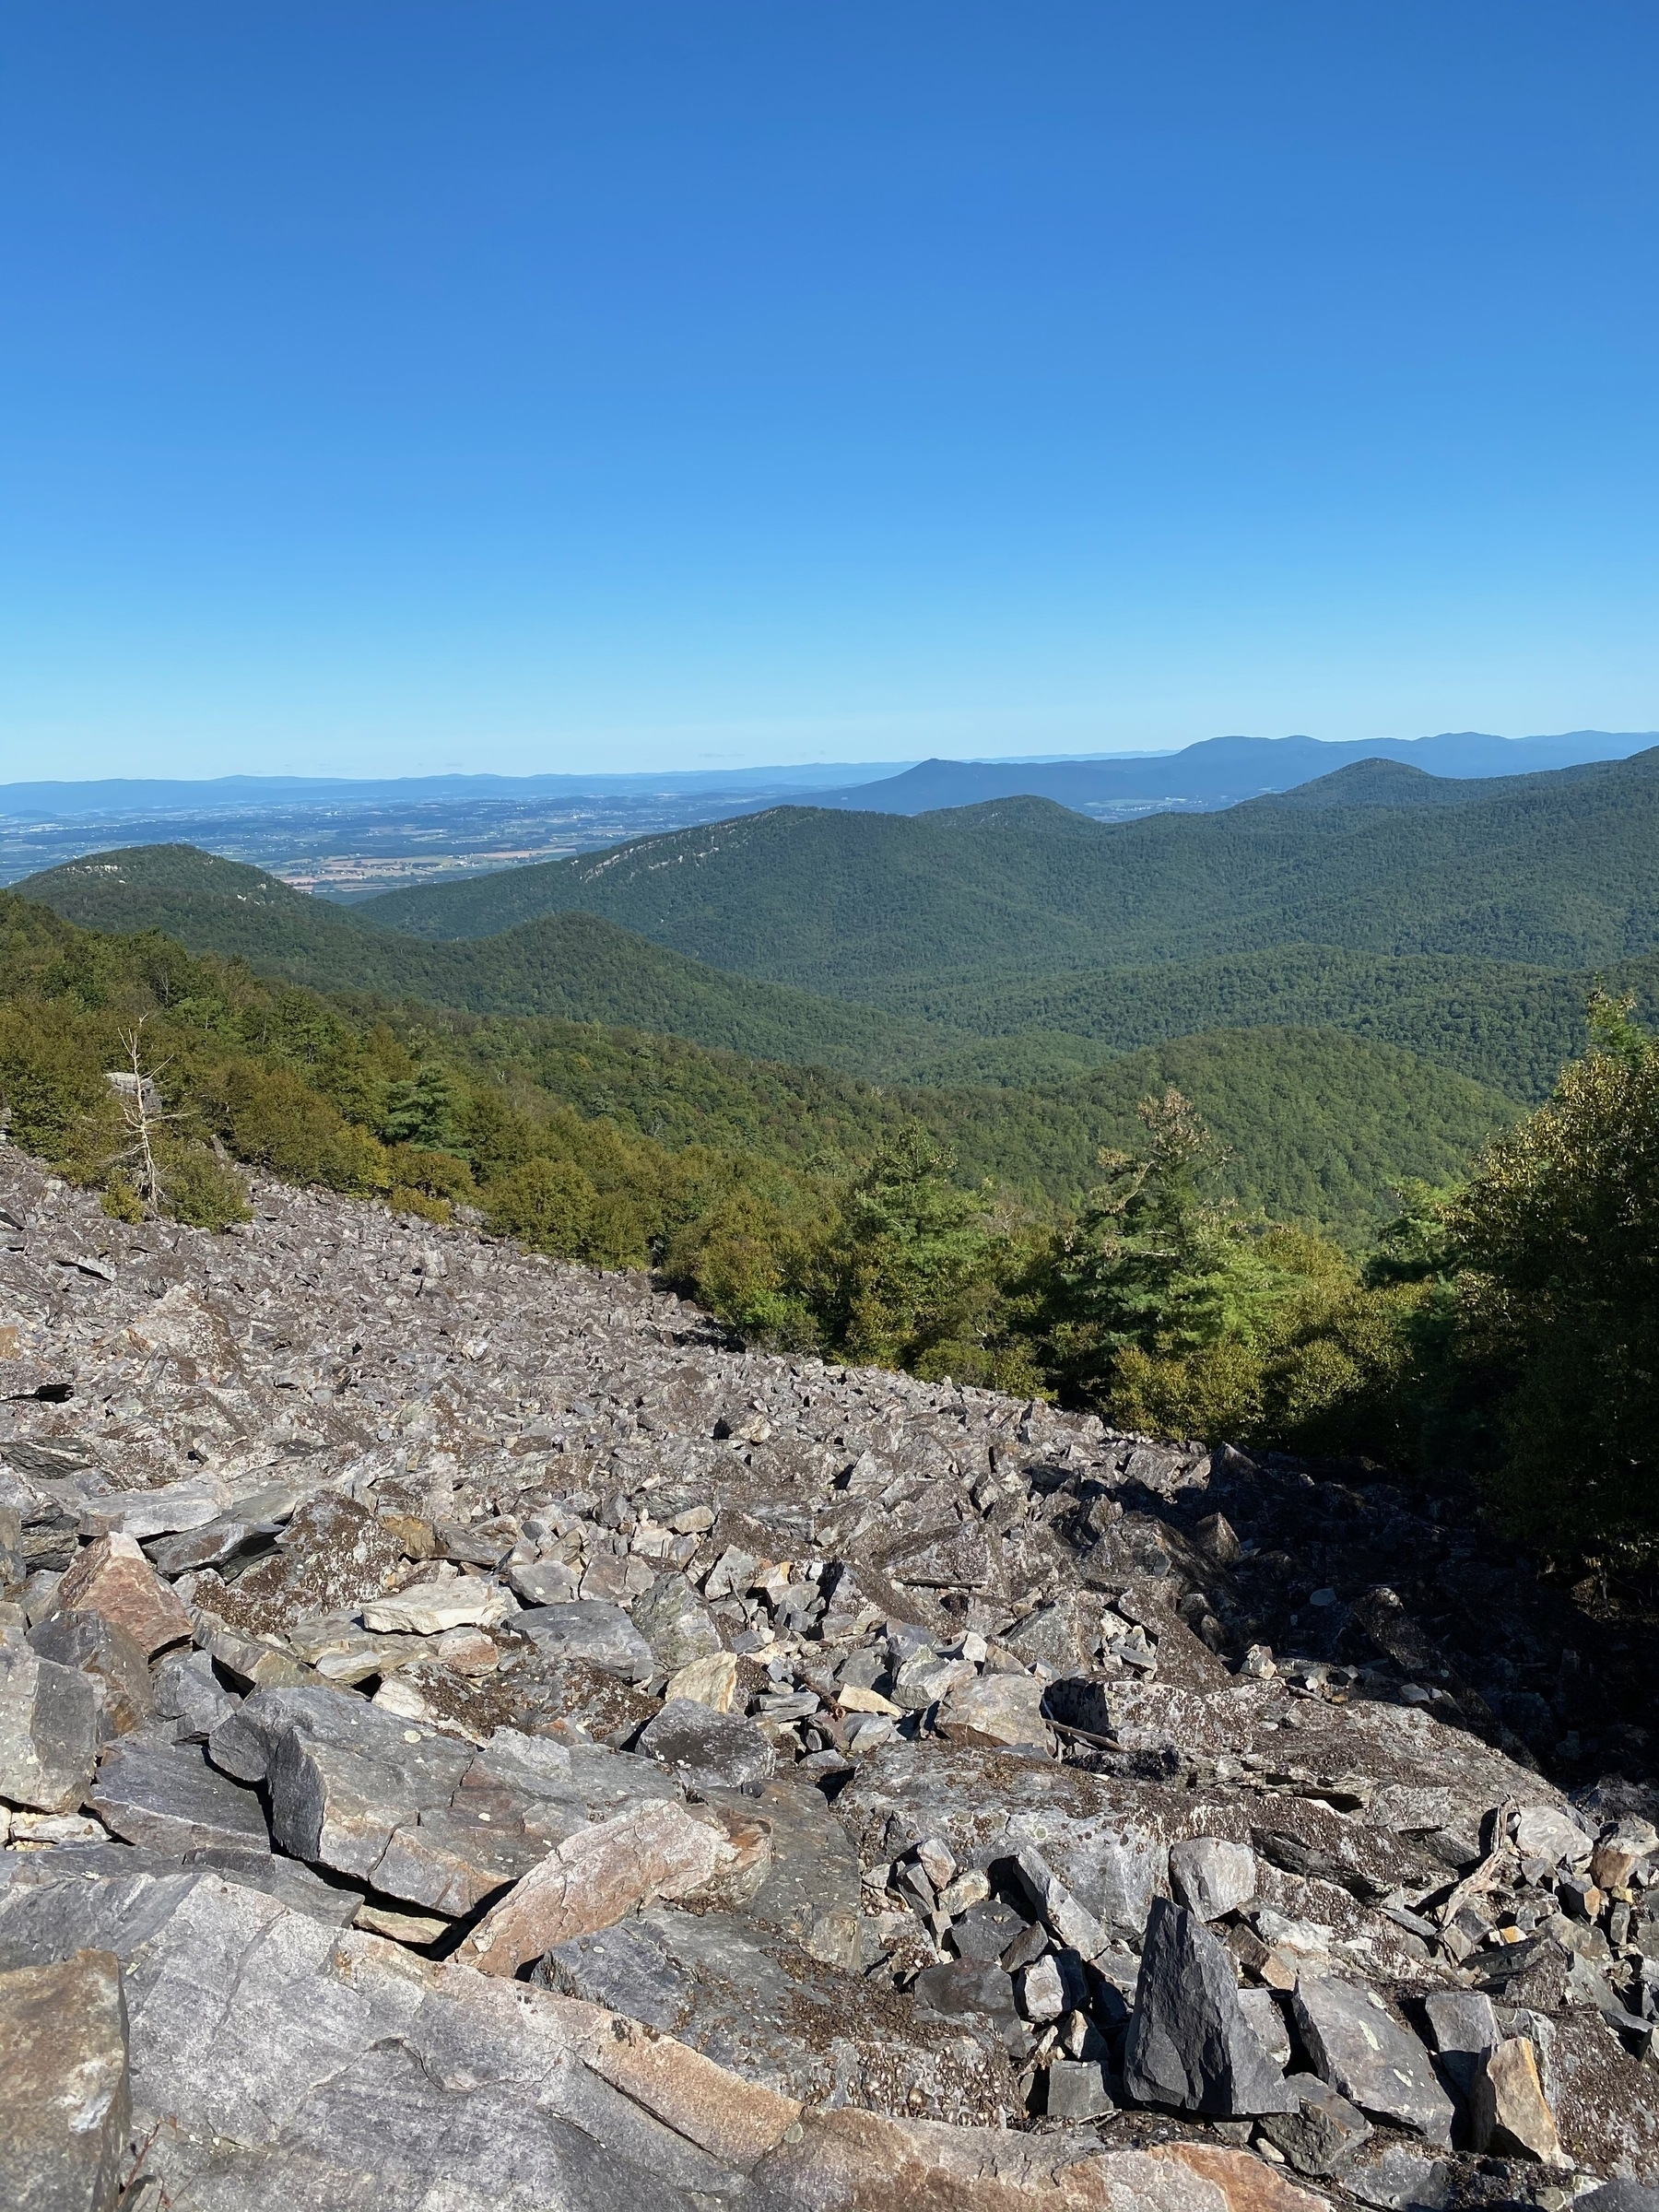 Another picture of Blackrock Summit looking at the valley to the northwest below.